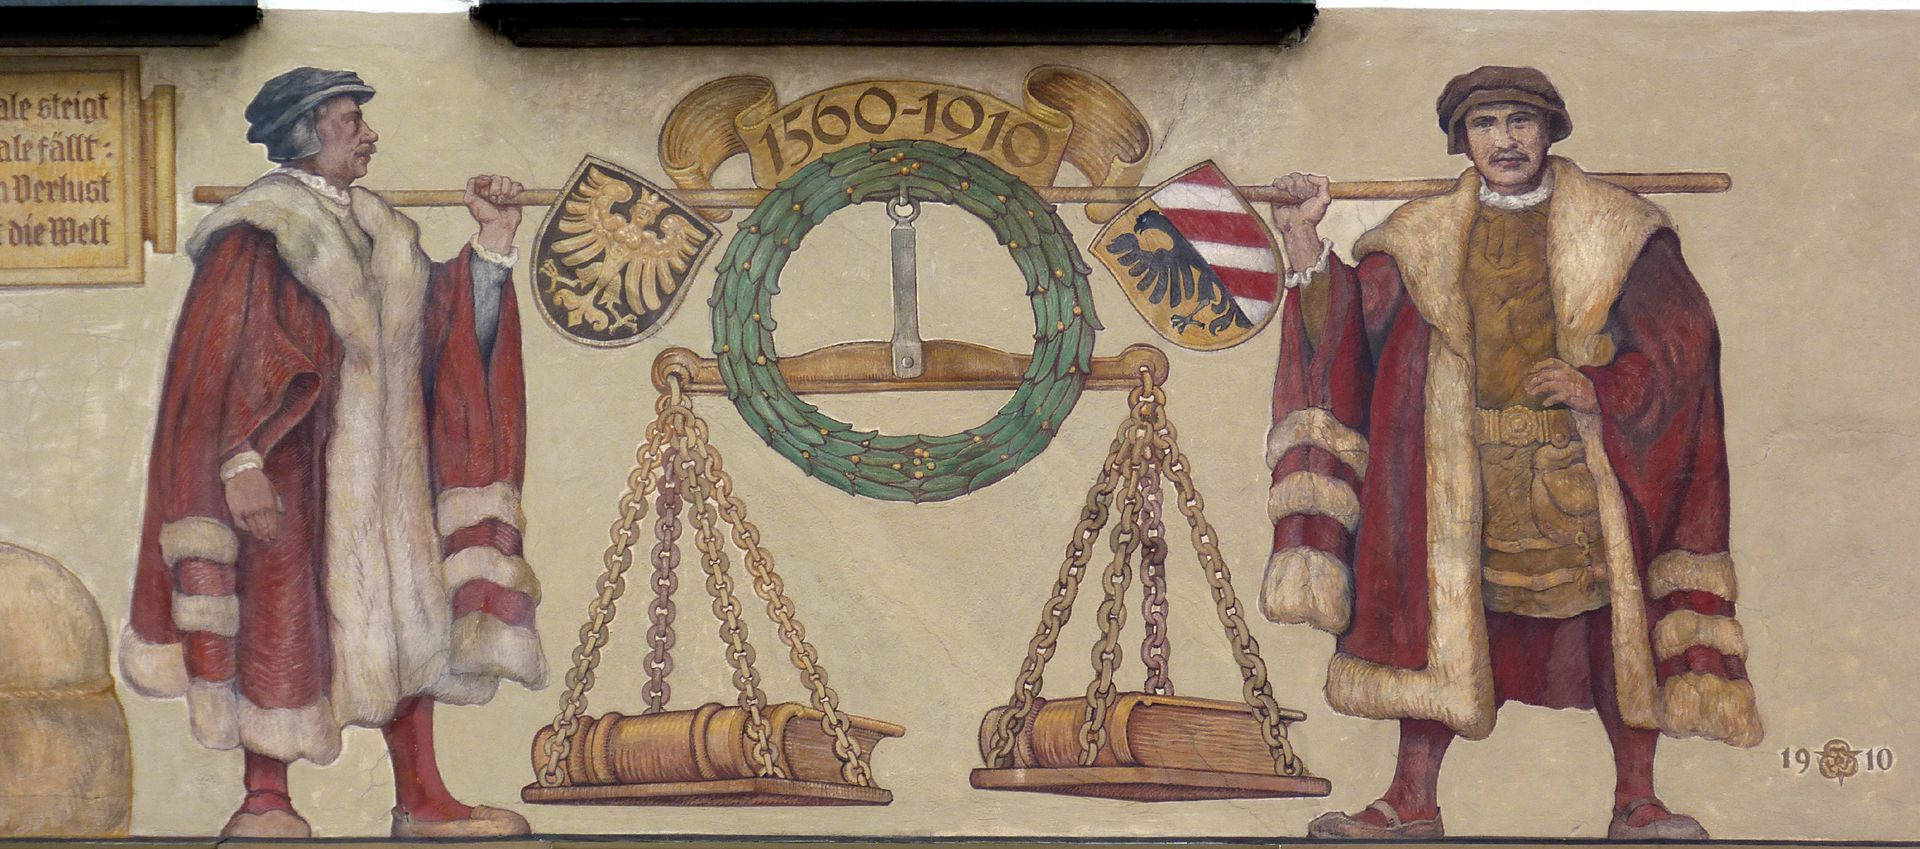 Merchants´trail South front, bearers of the weighing scale with coat of arms